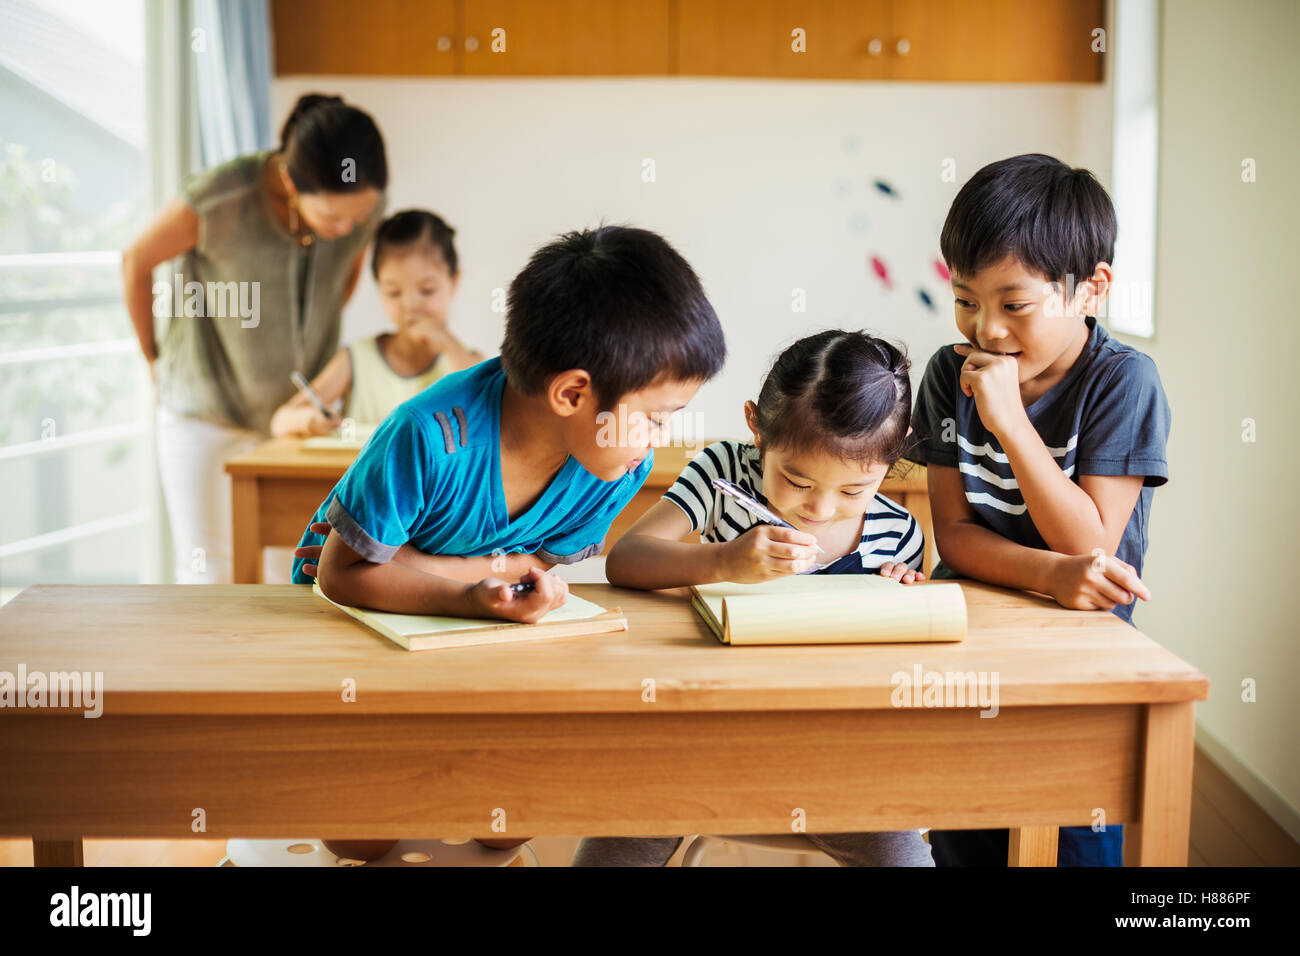 A group of children in a classroom with their female teacher. - Stock Image